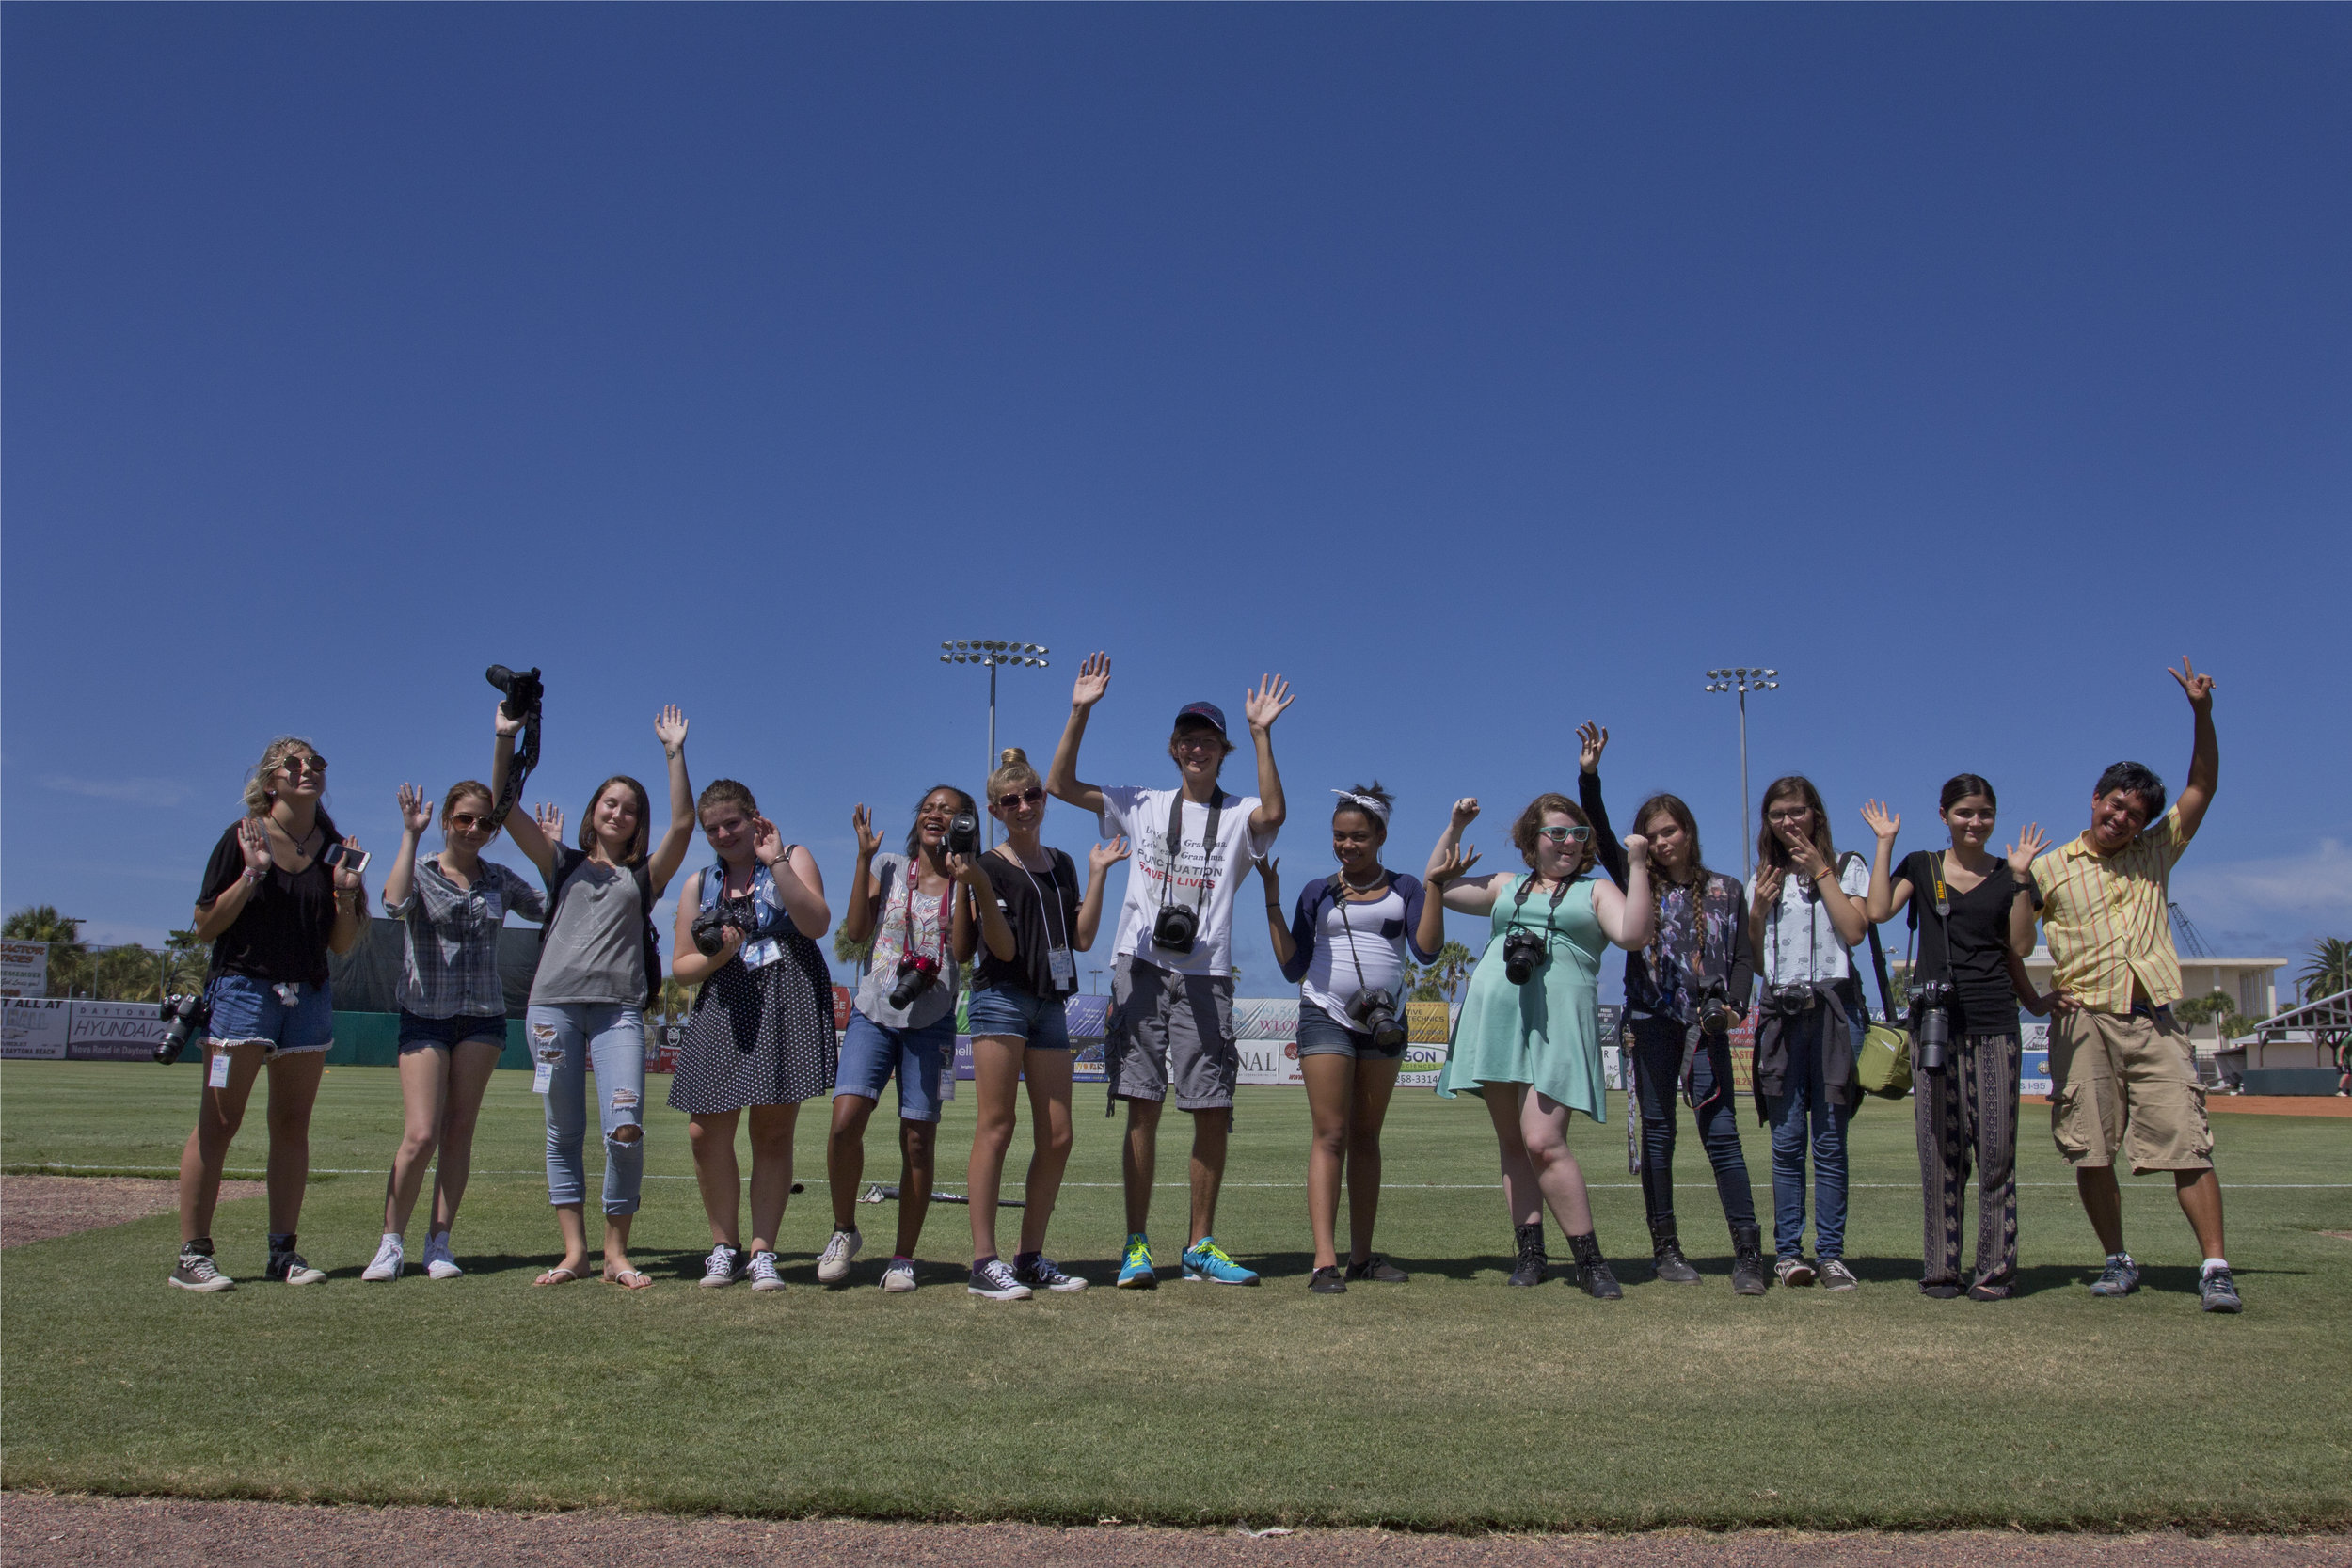 Academy students on a field trip at the Jackie Robinson Ballpark in Daytona Beach, FL. Special thanks to photographer Aldrin Capulong and Director of Broadcasting, Luke Maura.